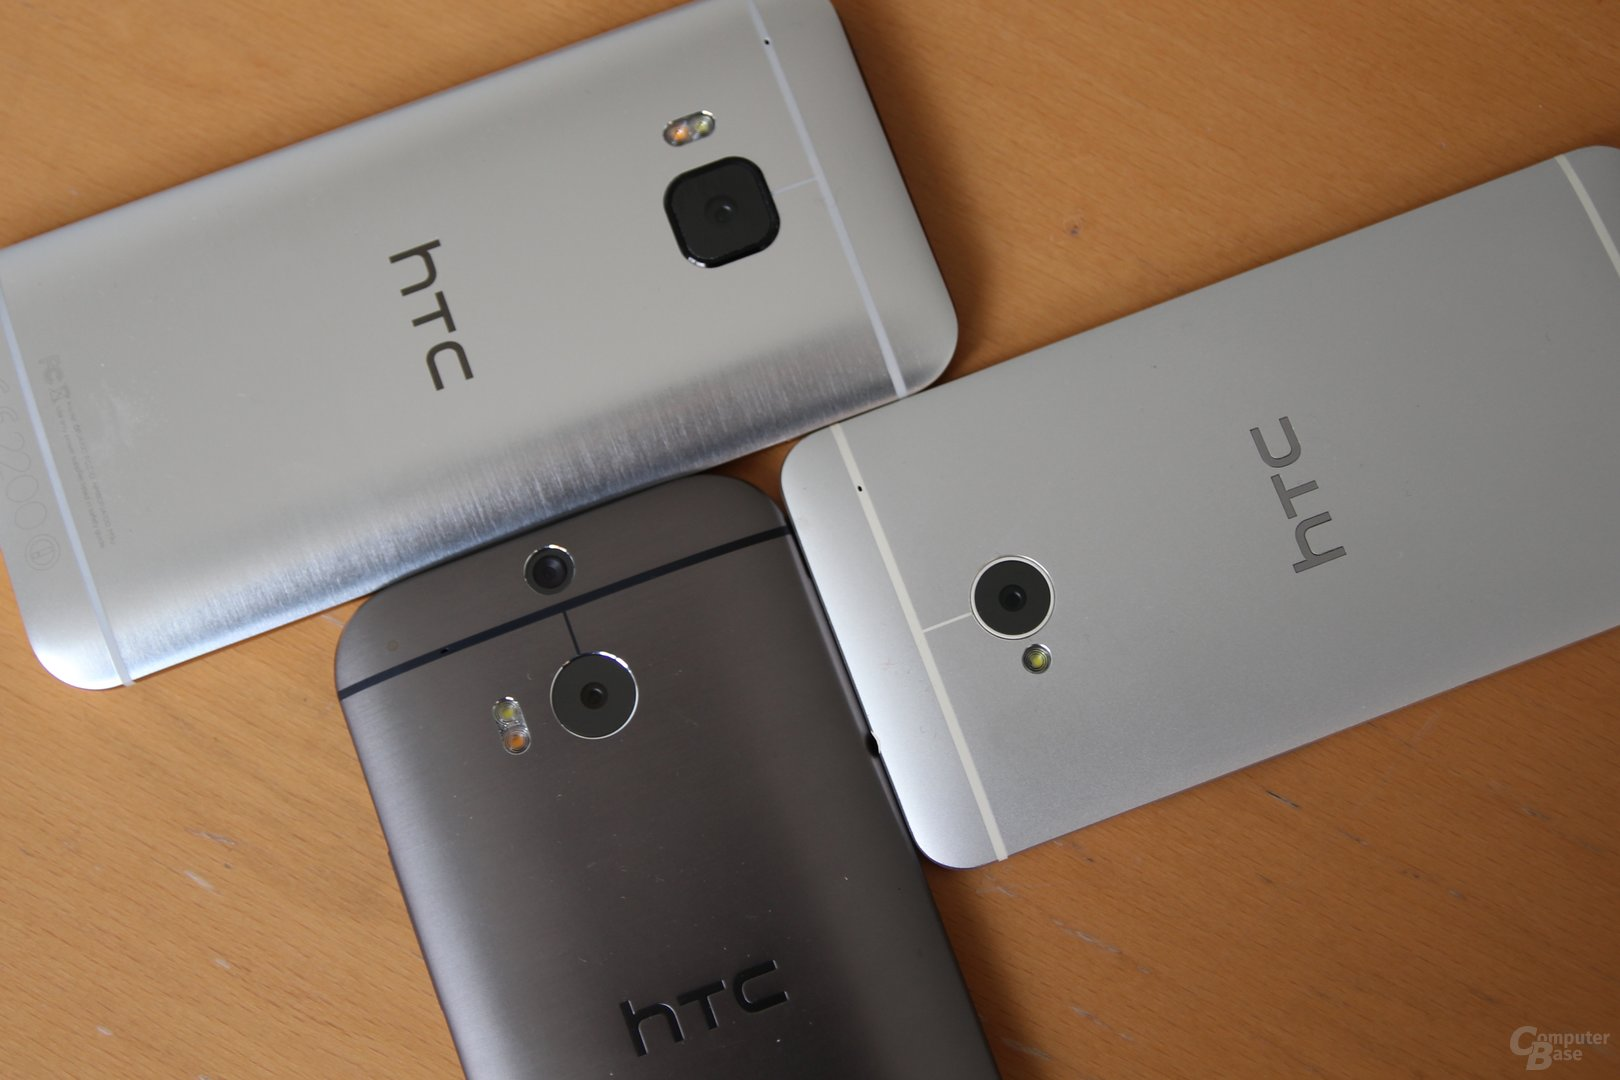 htc one m9 oben one m8 unten und die urversion. Black Bedroom Furniture Sets. Home Design Ideas